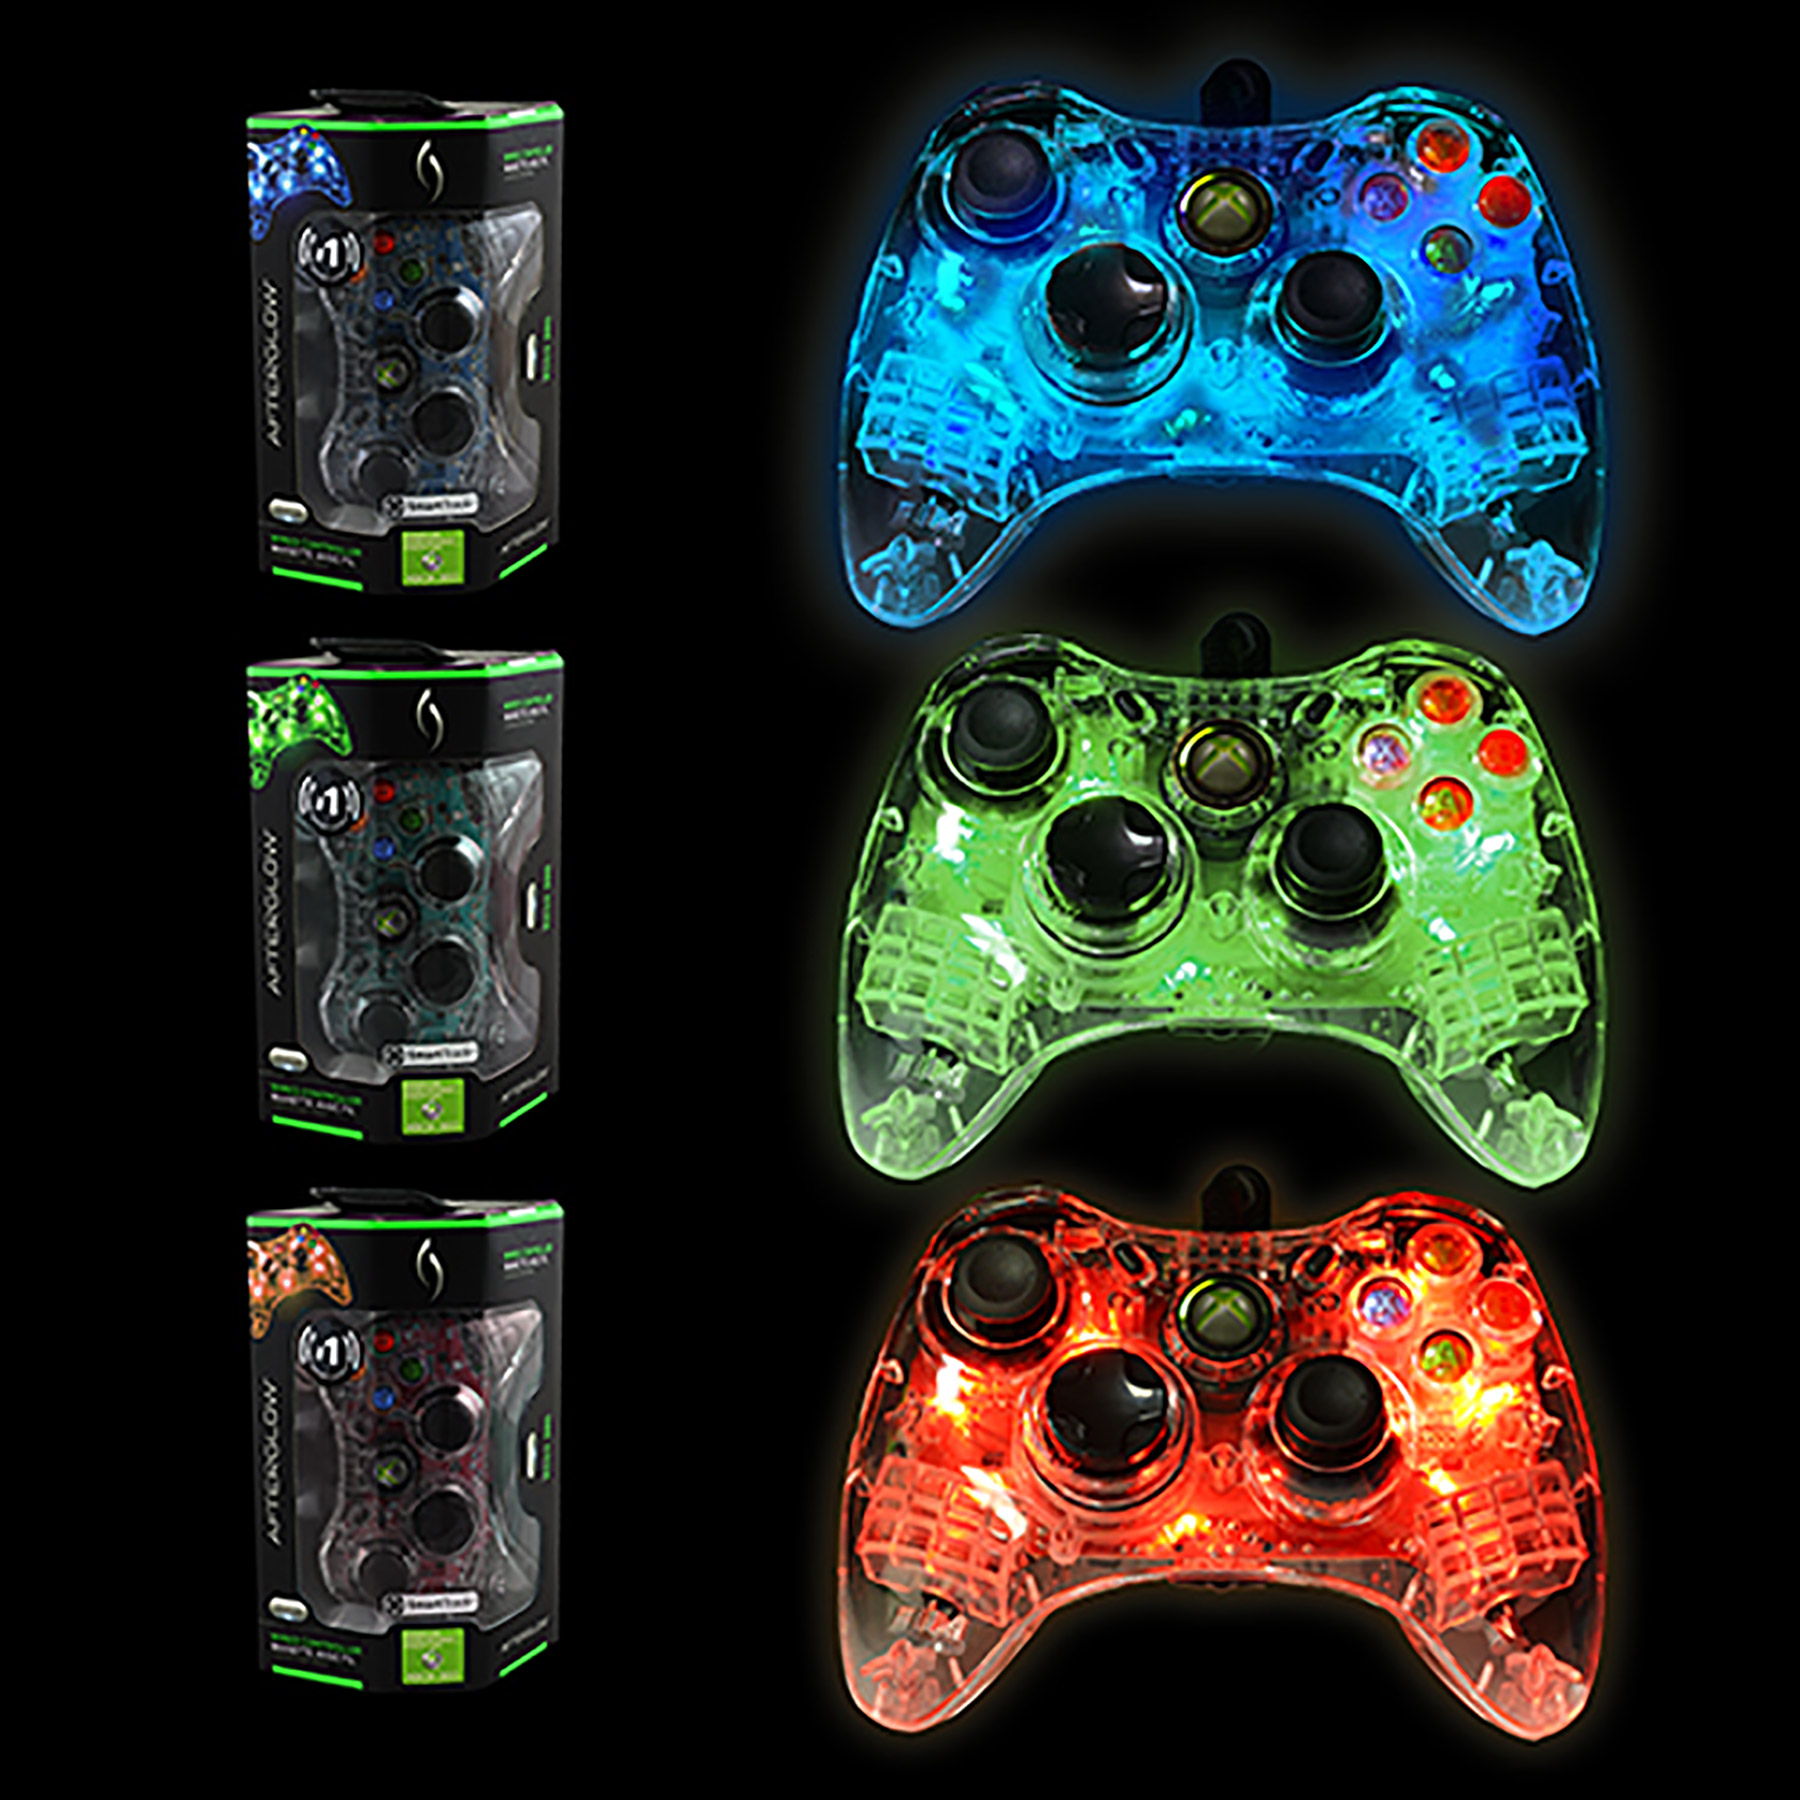 Pdp afterglow xbox 360 controller / Mma world series